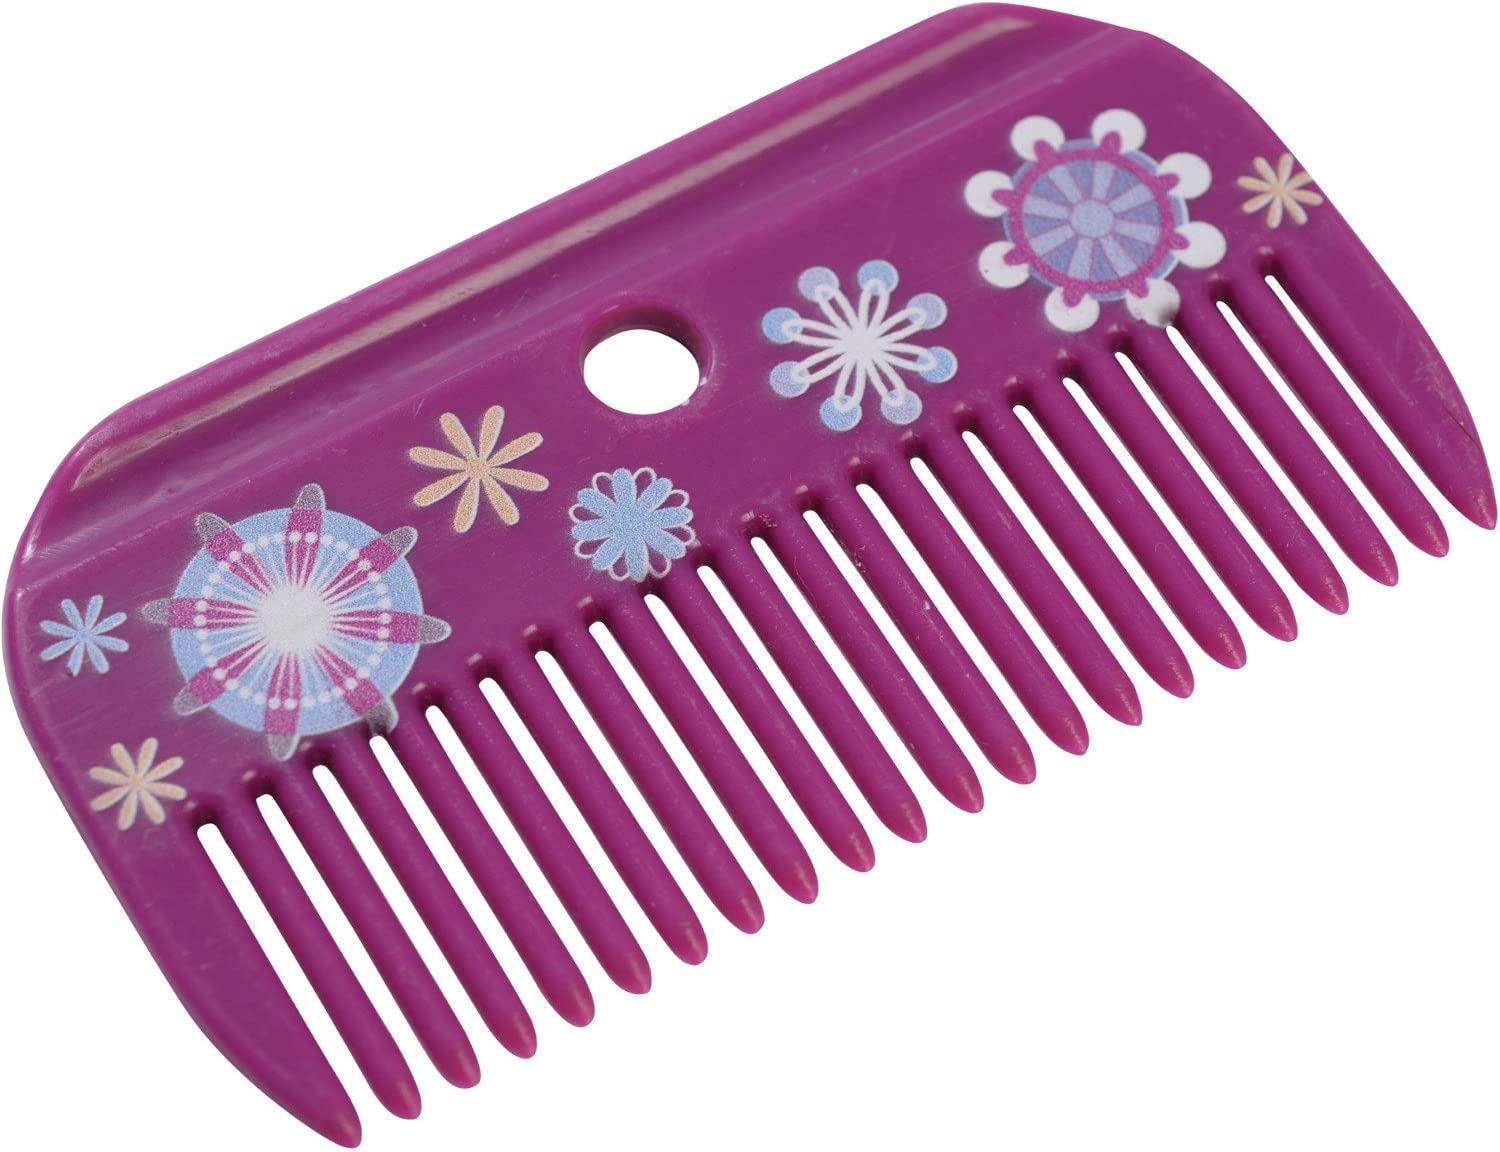 Roma Pattern Curry Comb